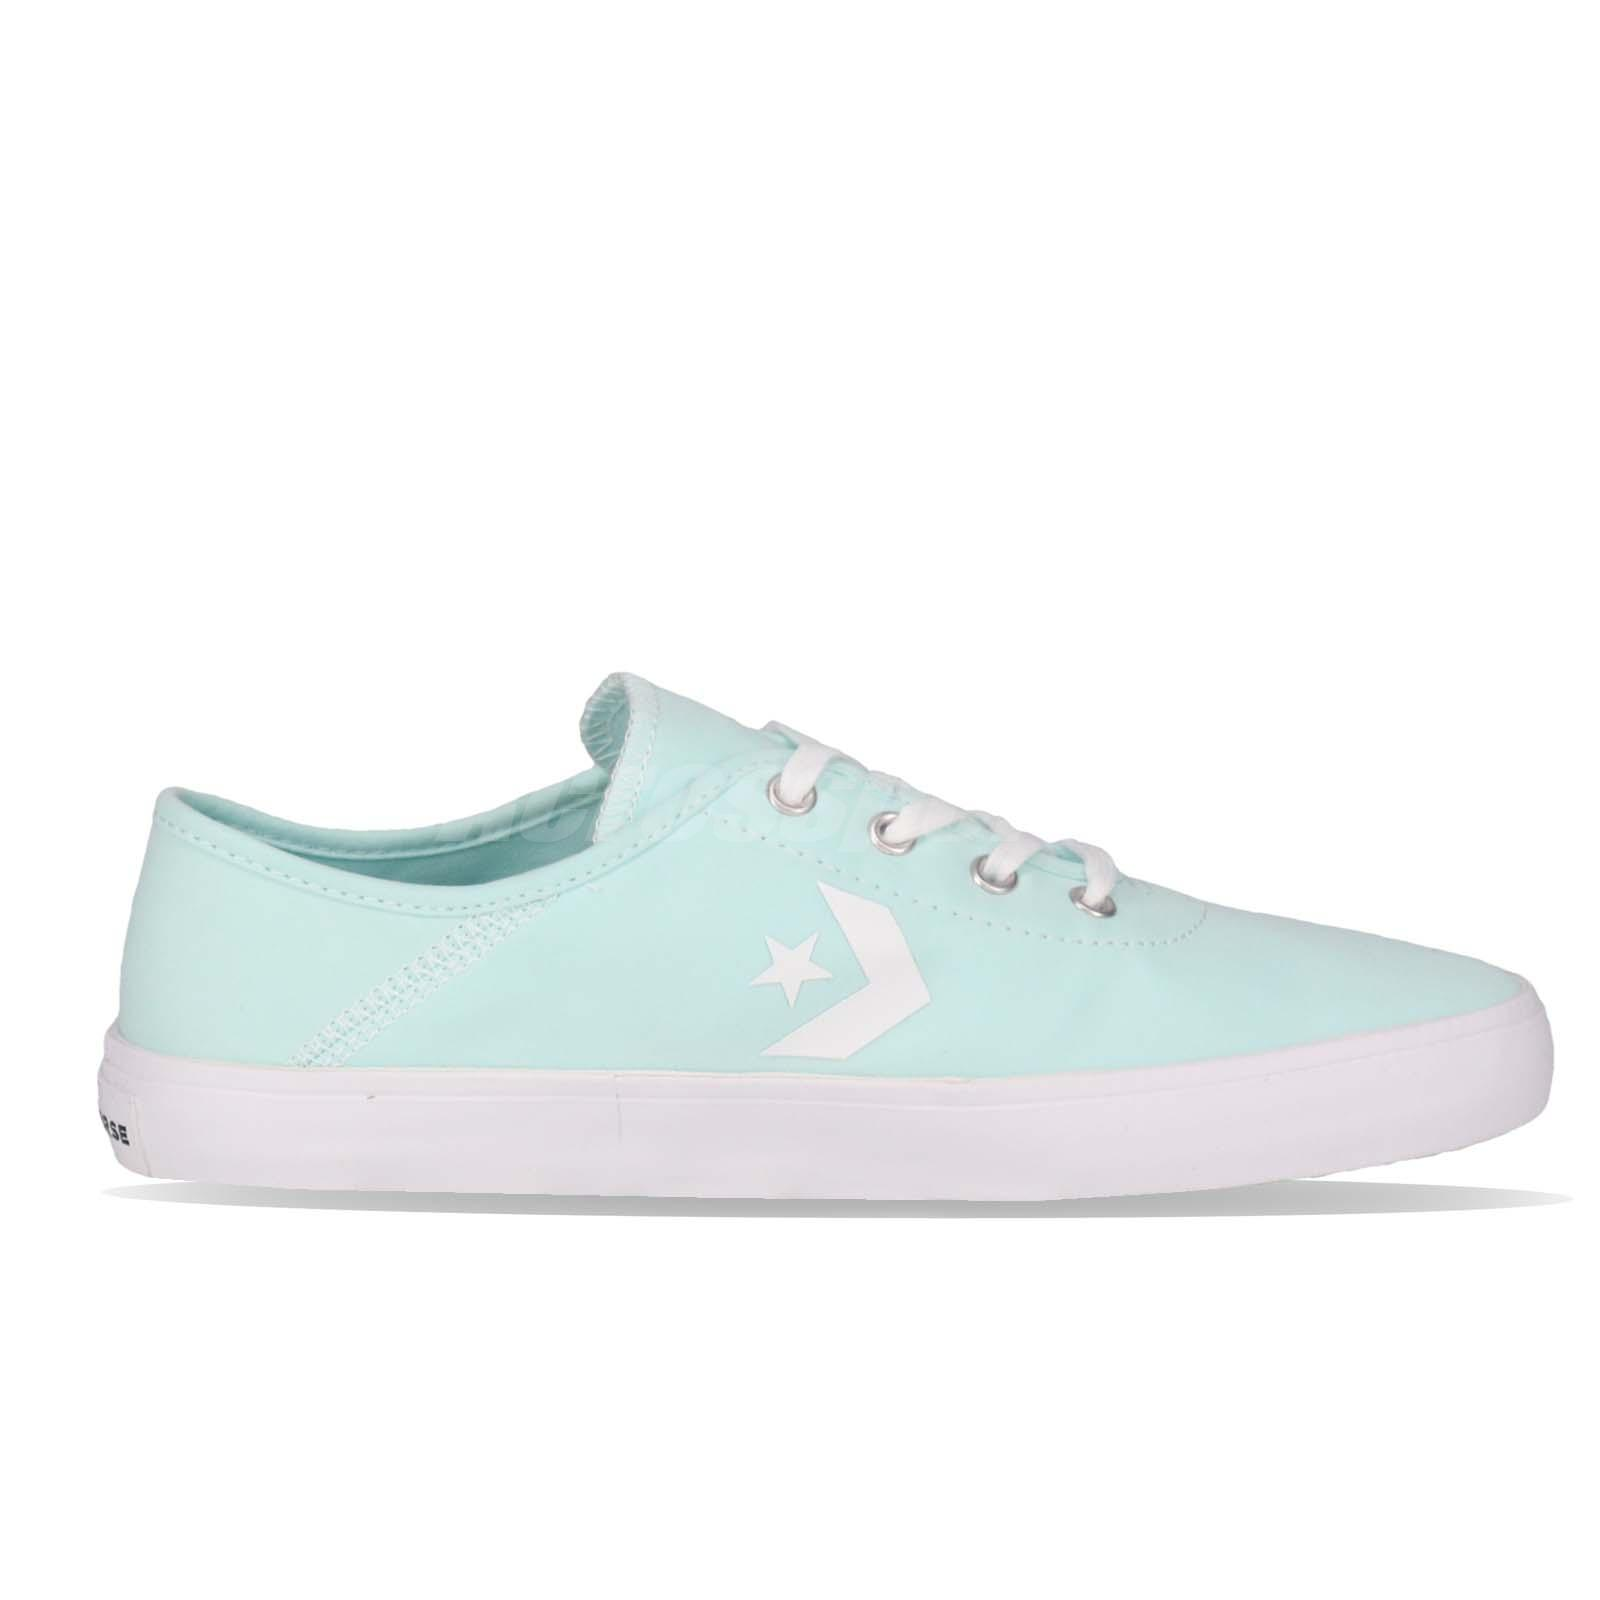 64400a9c18c2ce Converse Costa OX Tint White Canvas Women Casual Lifestyle Shoes ...